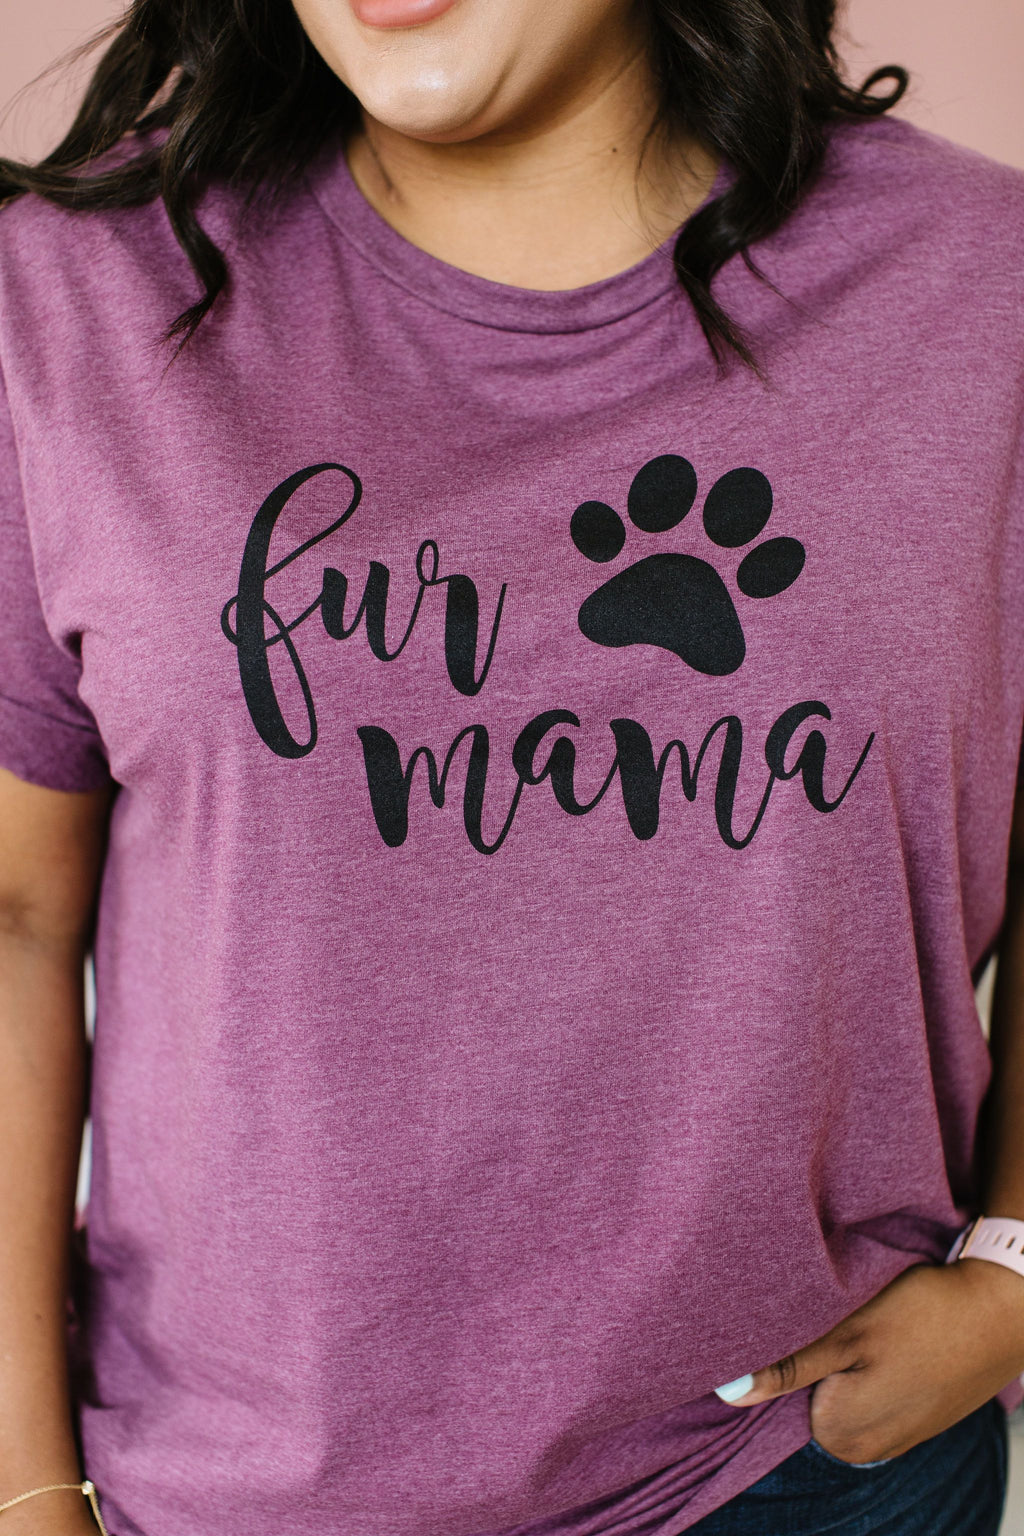 Fur Mama Graphic Tee-2XL, 3XL, 5-1-2020, Group A, Group B, Group C, Group D, Large, Medium, Plus, Small, Tops, XL, XS-Womens Artisan USA American Made Clothing Accessories